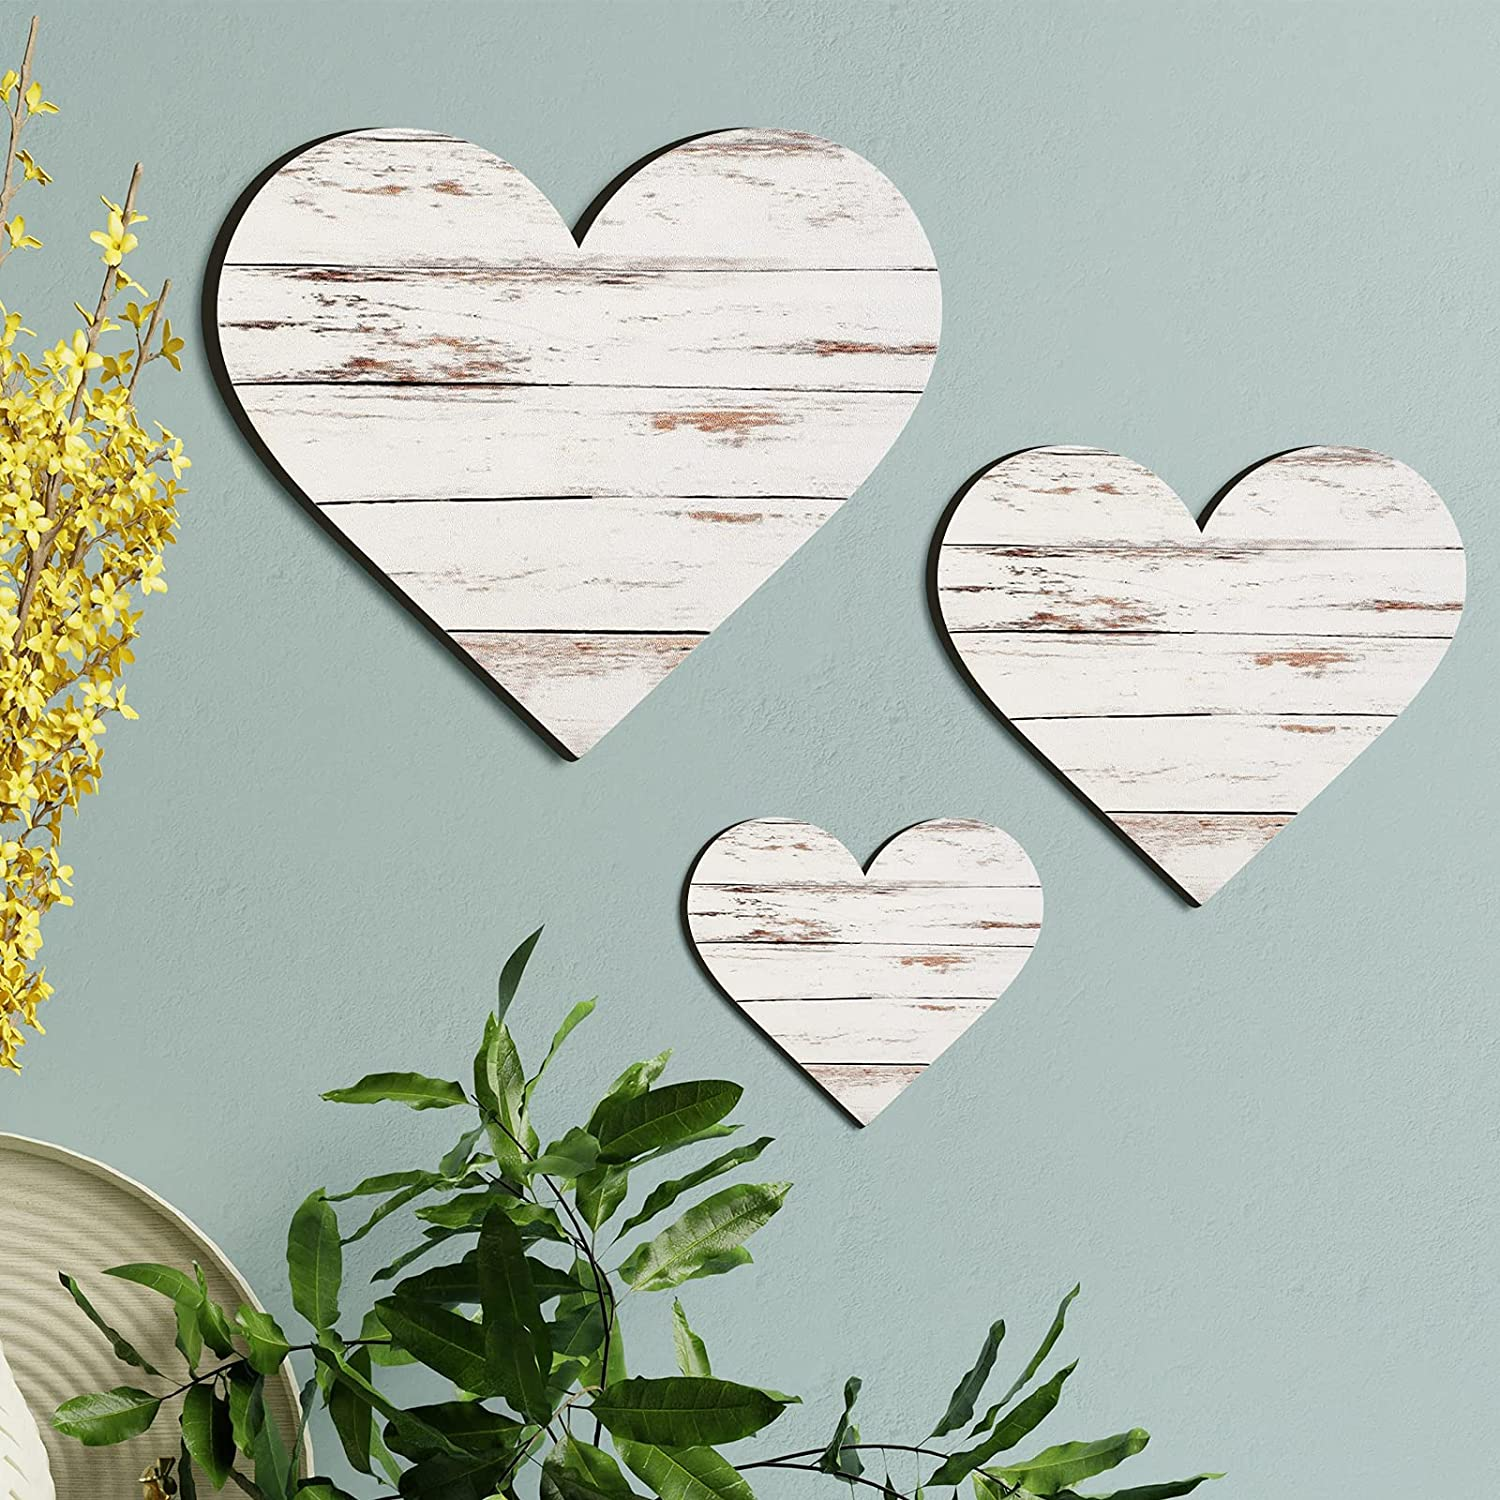 Jetec 3 Pieces Heart Shaped Wood Sign Heart-Shaped Wooden Wall Sign Wood Heart Wall Decor Rustic Hanging Sign Wooden Heart Plaque for Home Farmhouse Living Room Bedroom (Simple Color)